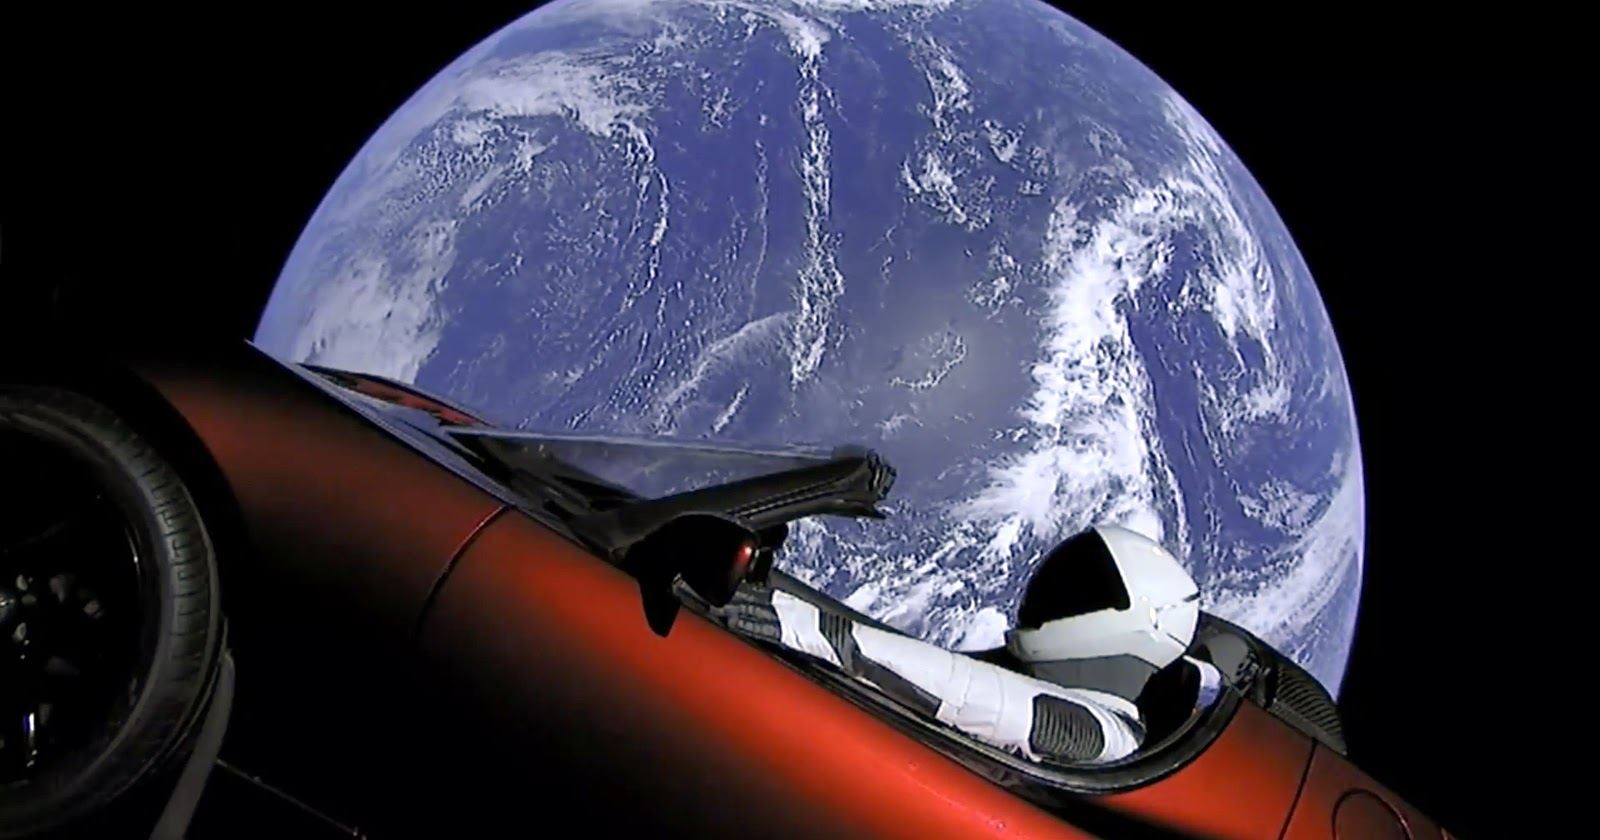 Tesla's red car in outer space, floating past Earth with Rocketman at the wheel